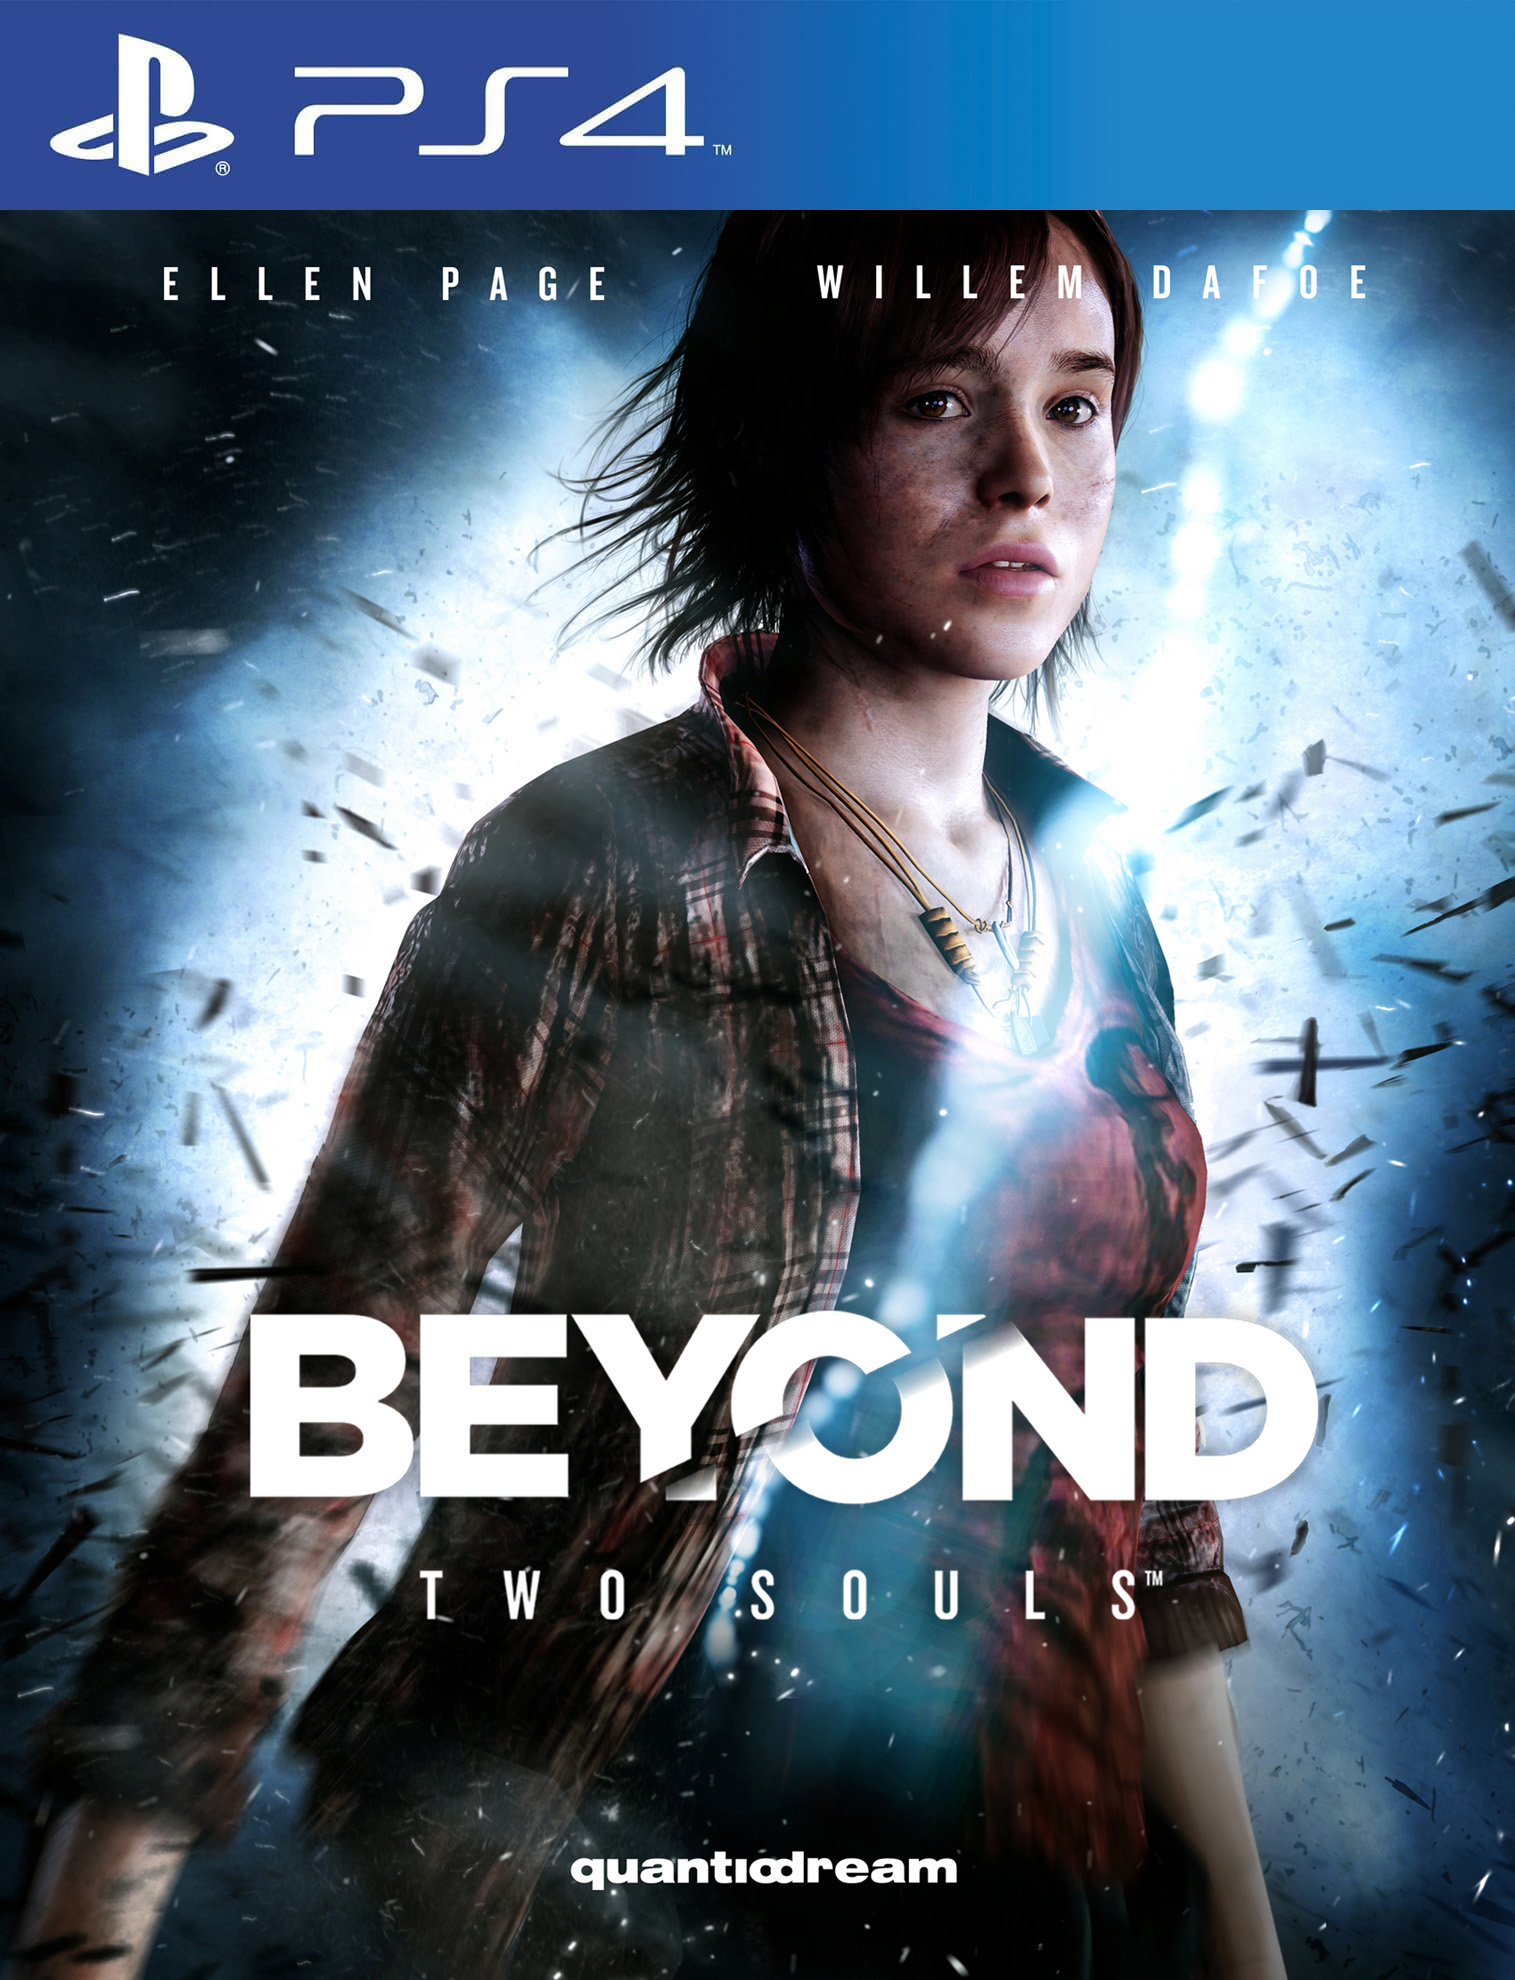 Beyond: Two Souls / ЗА ГРАНЬЮ: Две души [PS4] 5.05 [HEN] [EUR] (2015) [Русский/Английский] (v1.00)